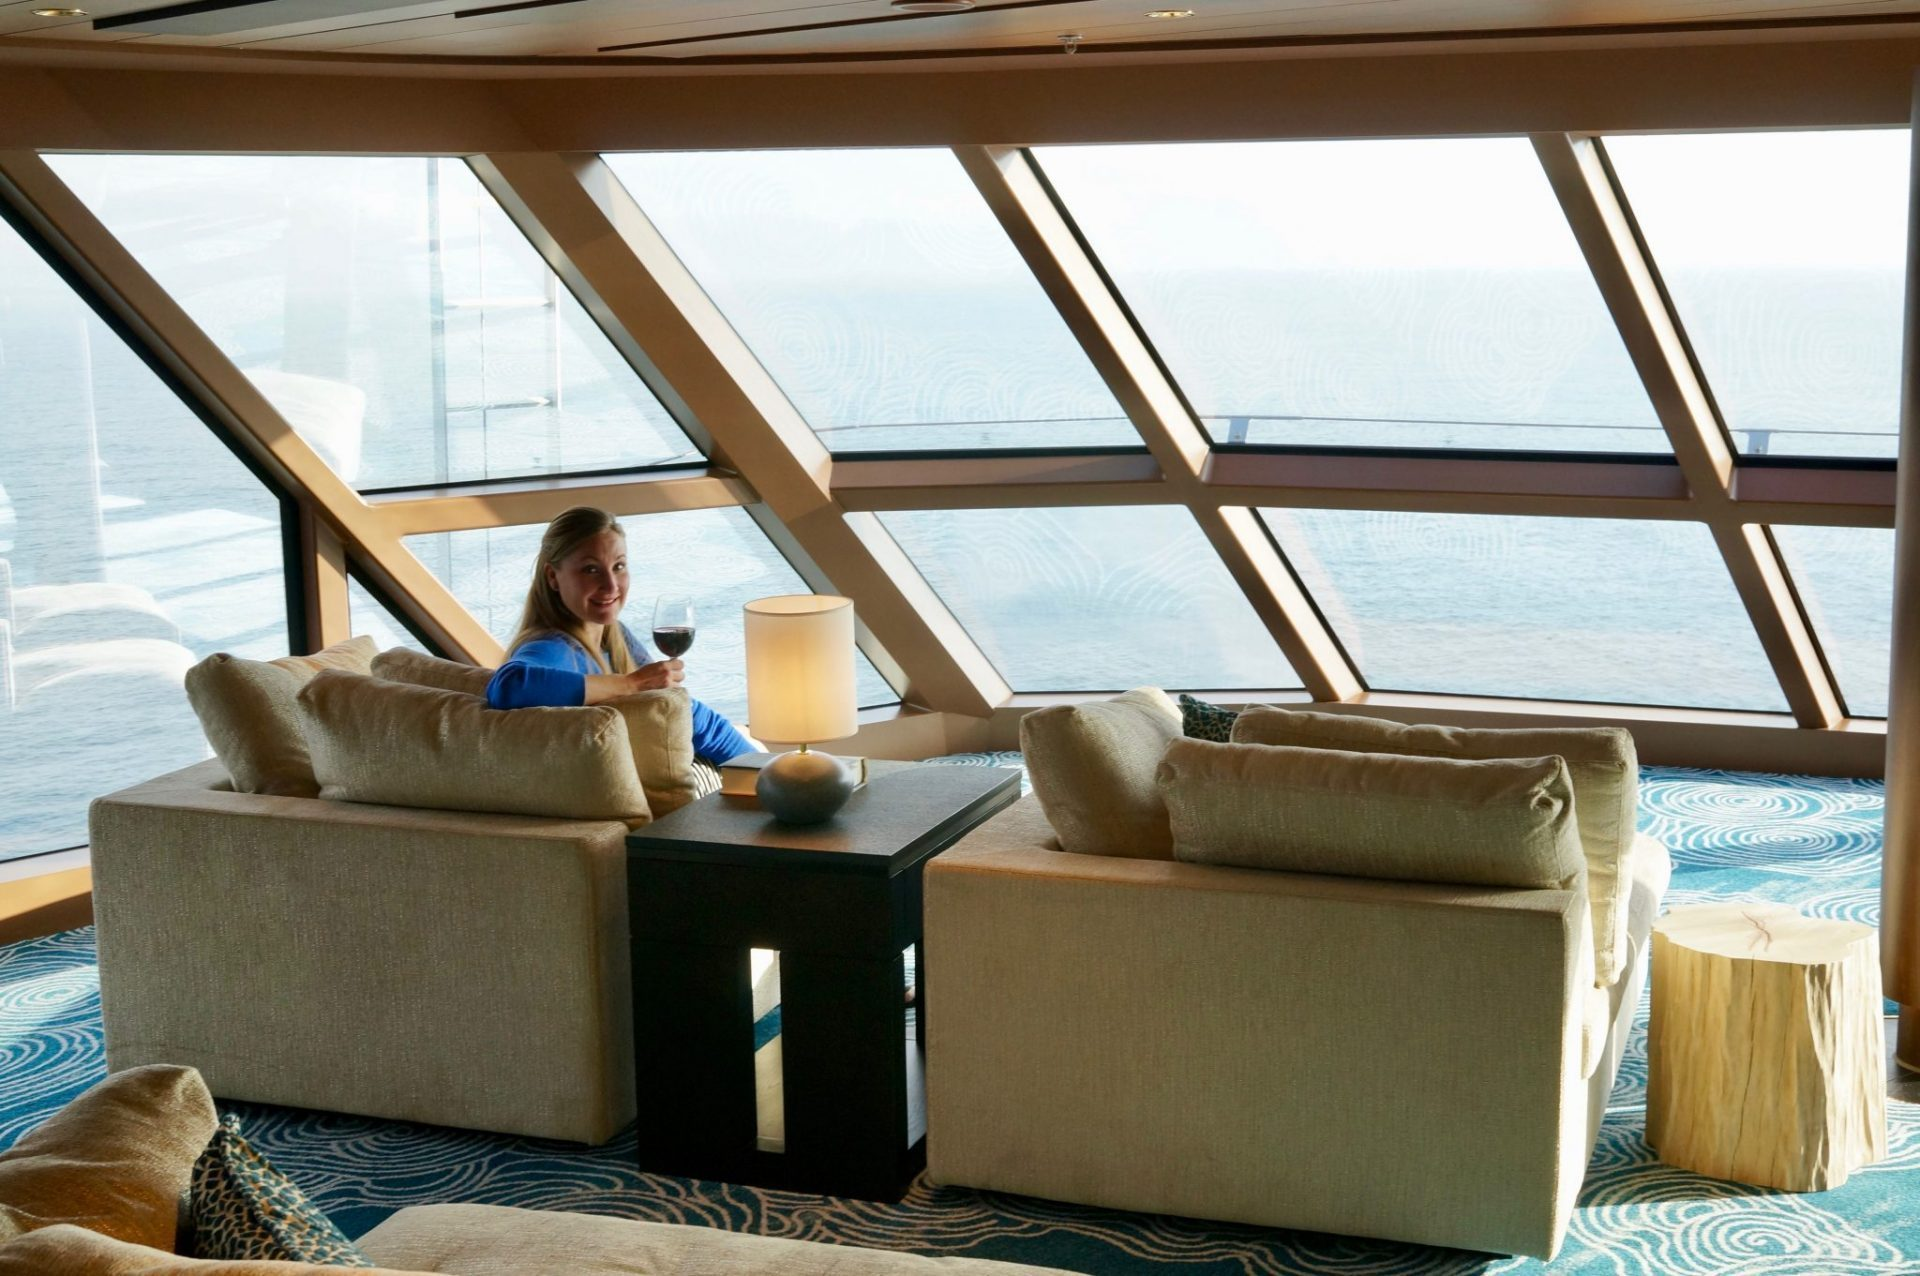 Drinking wine on Norwegian Bliss